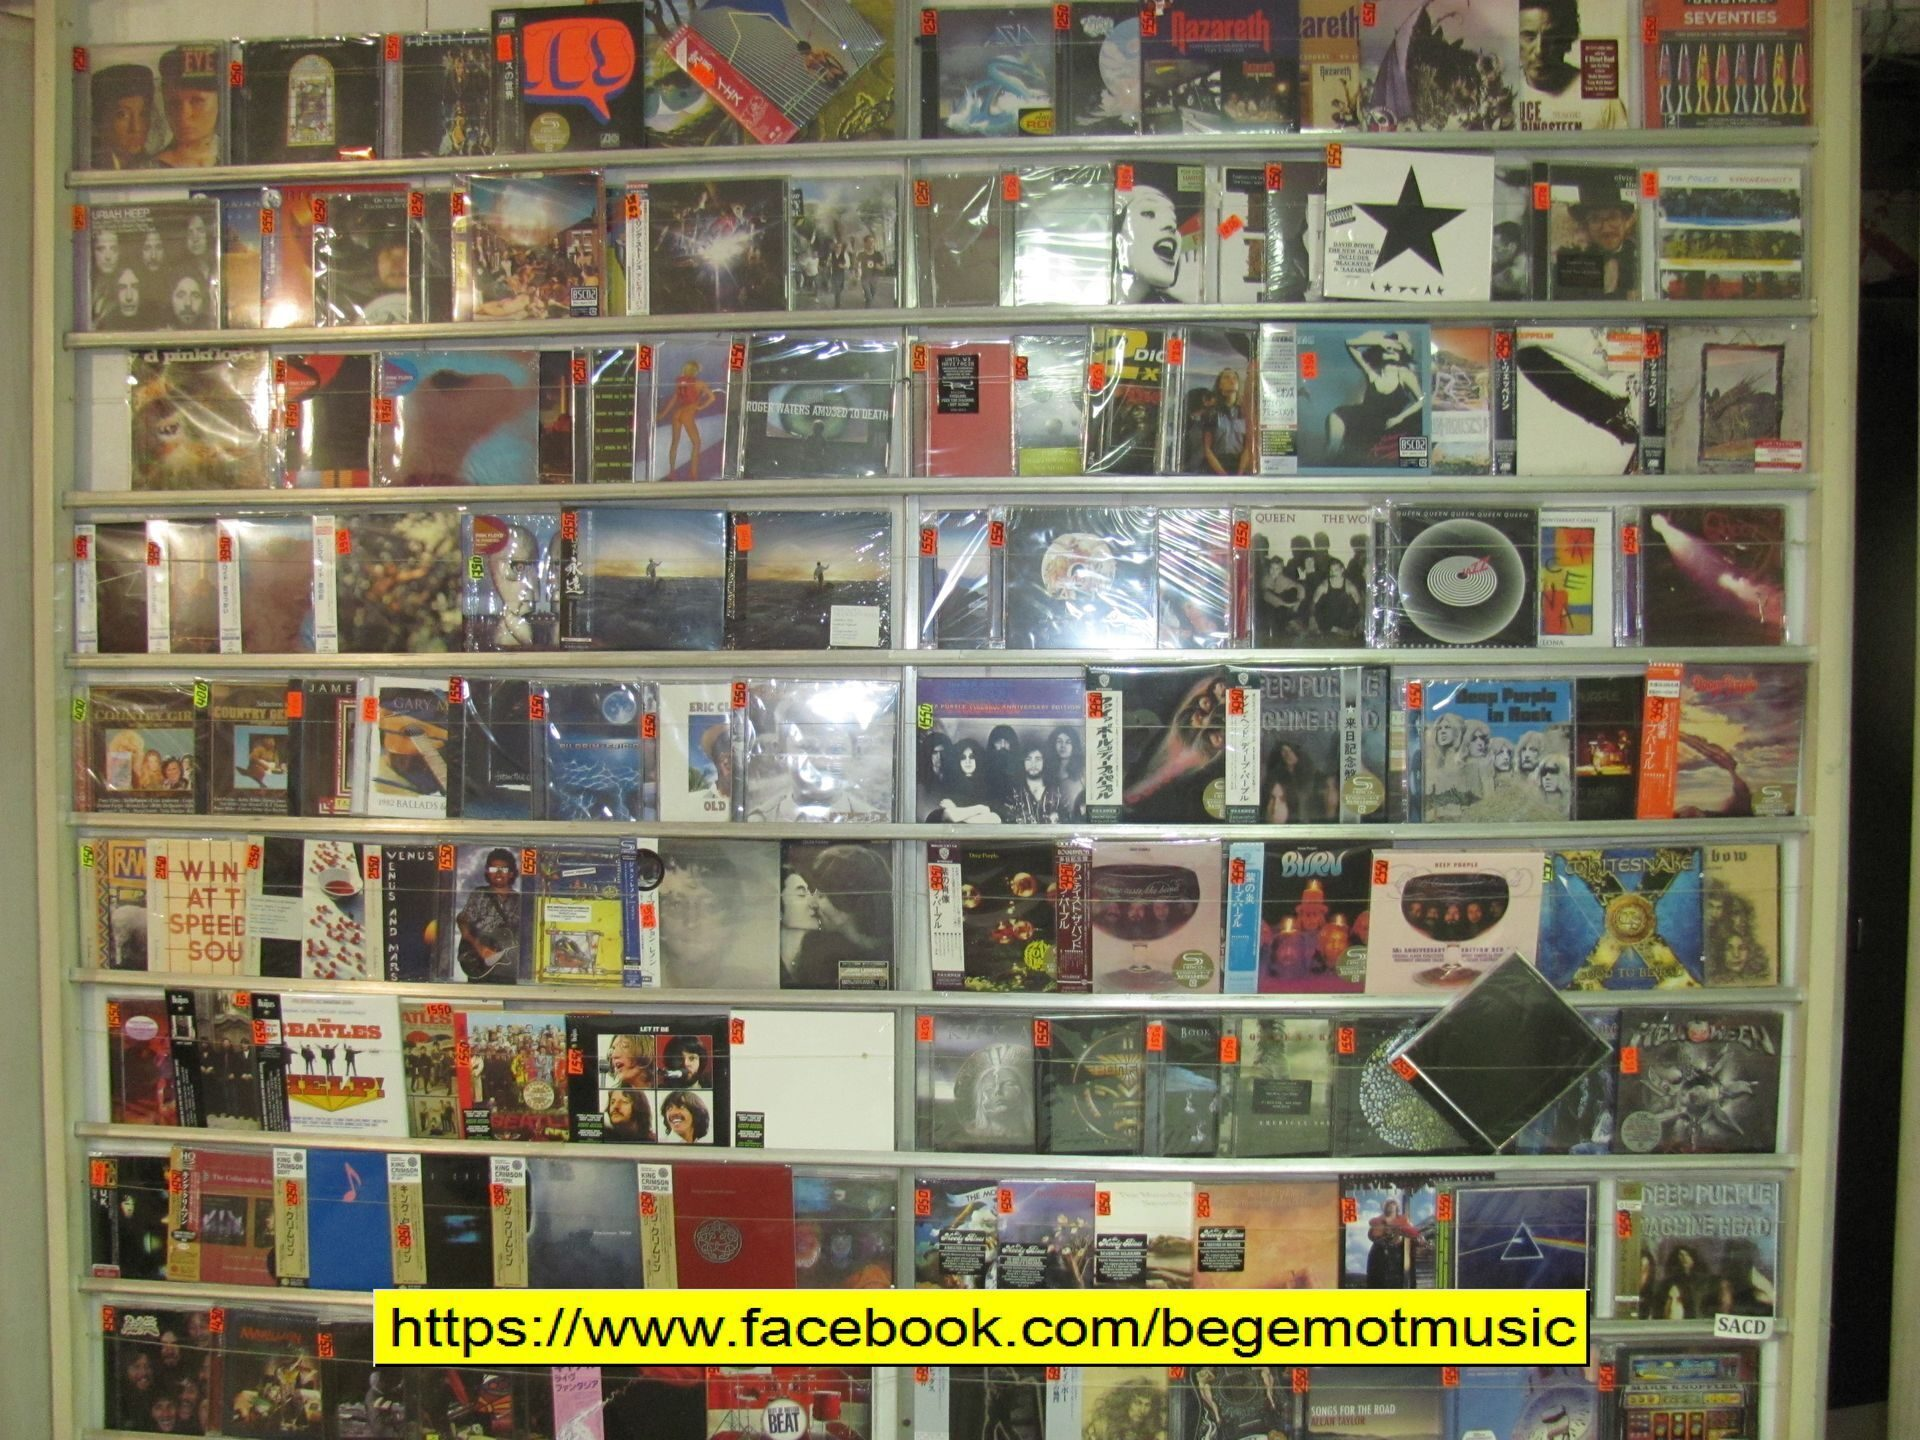 rock pink floyd deep purple uriah heep sweet nazareth led zeppelin facebook.com begemotmusic sacd hi